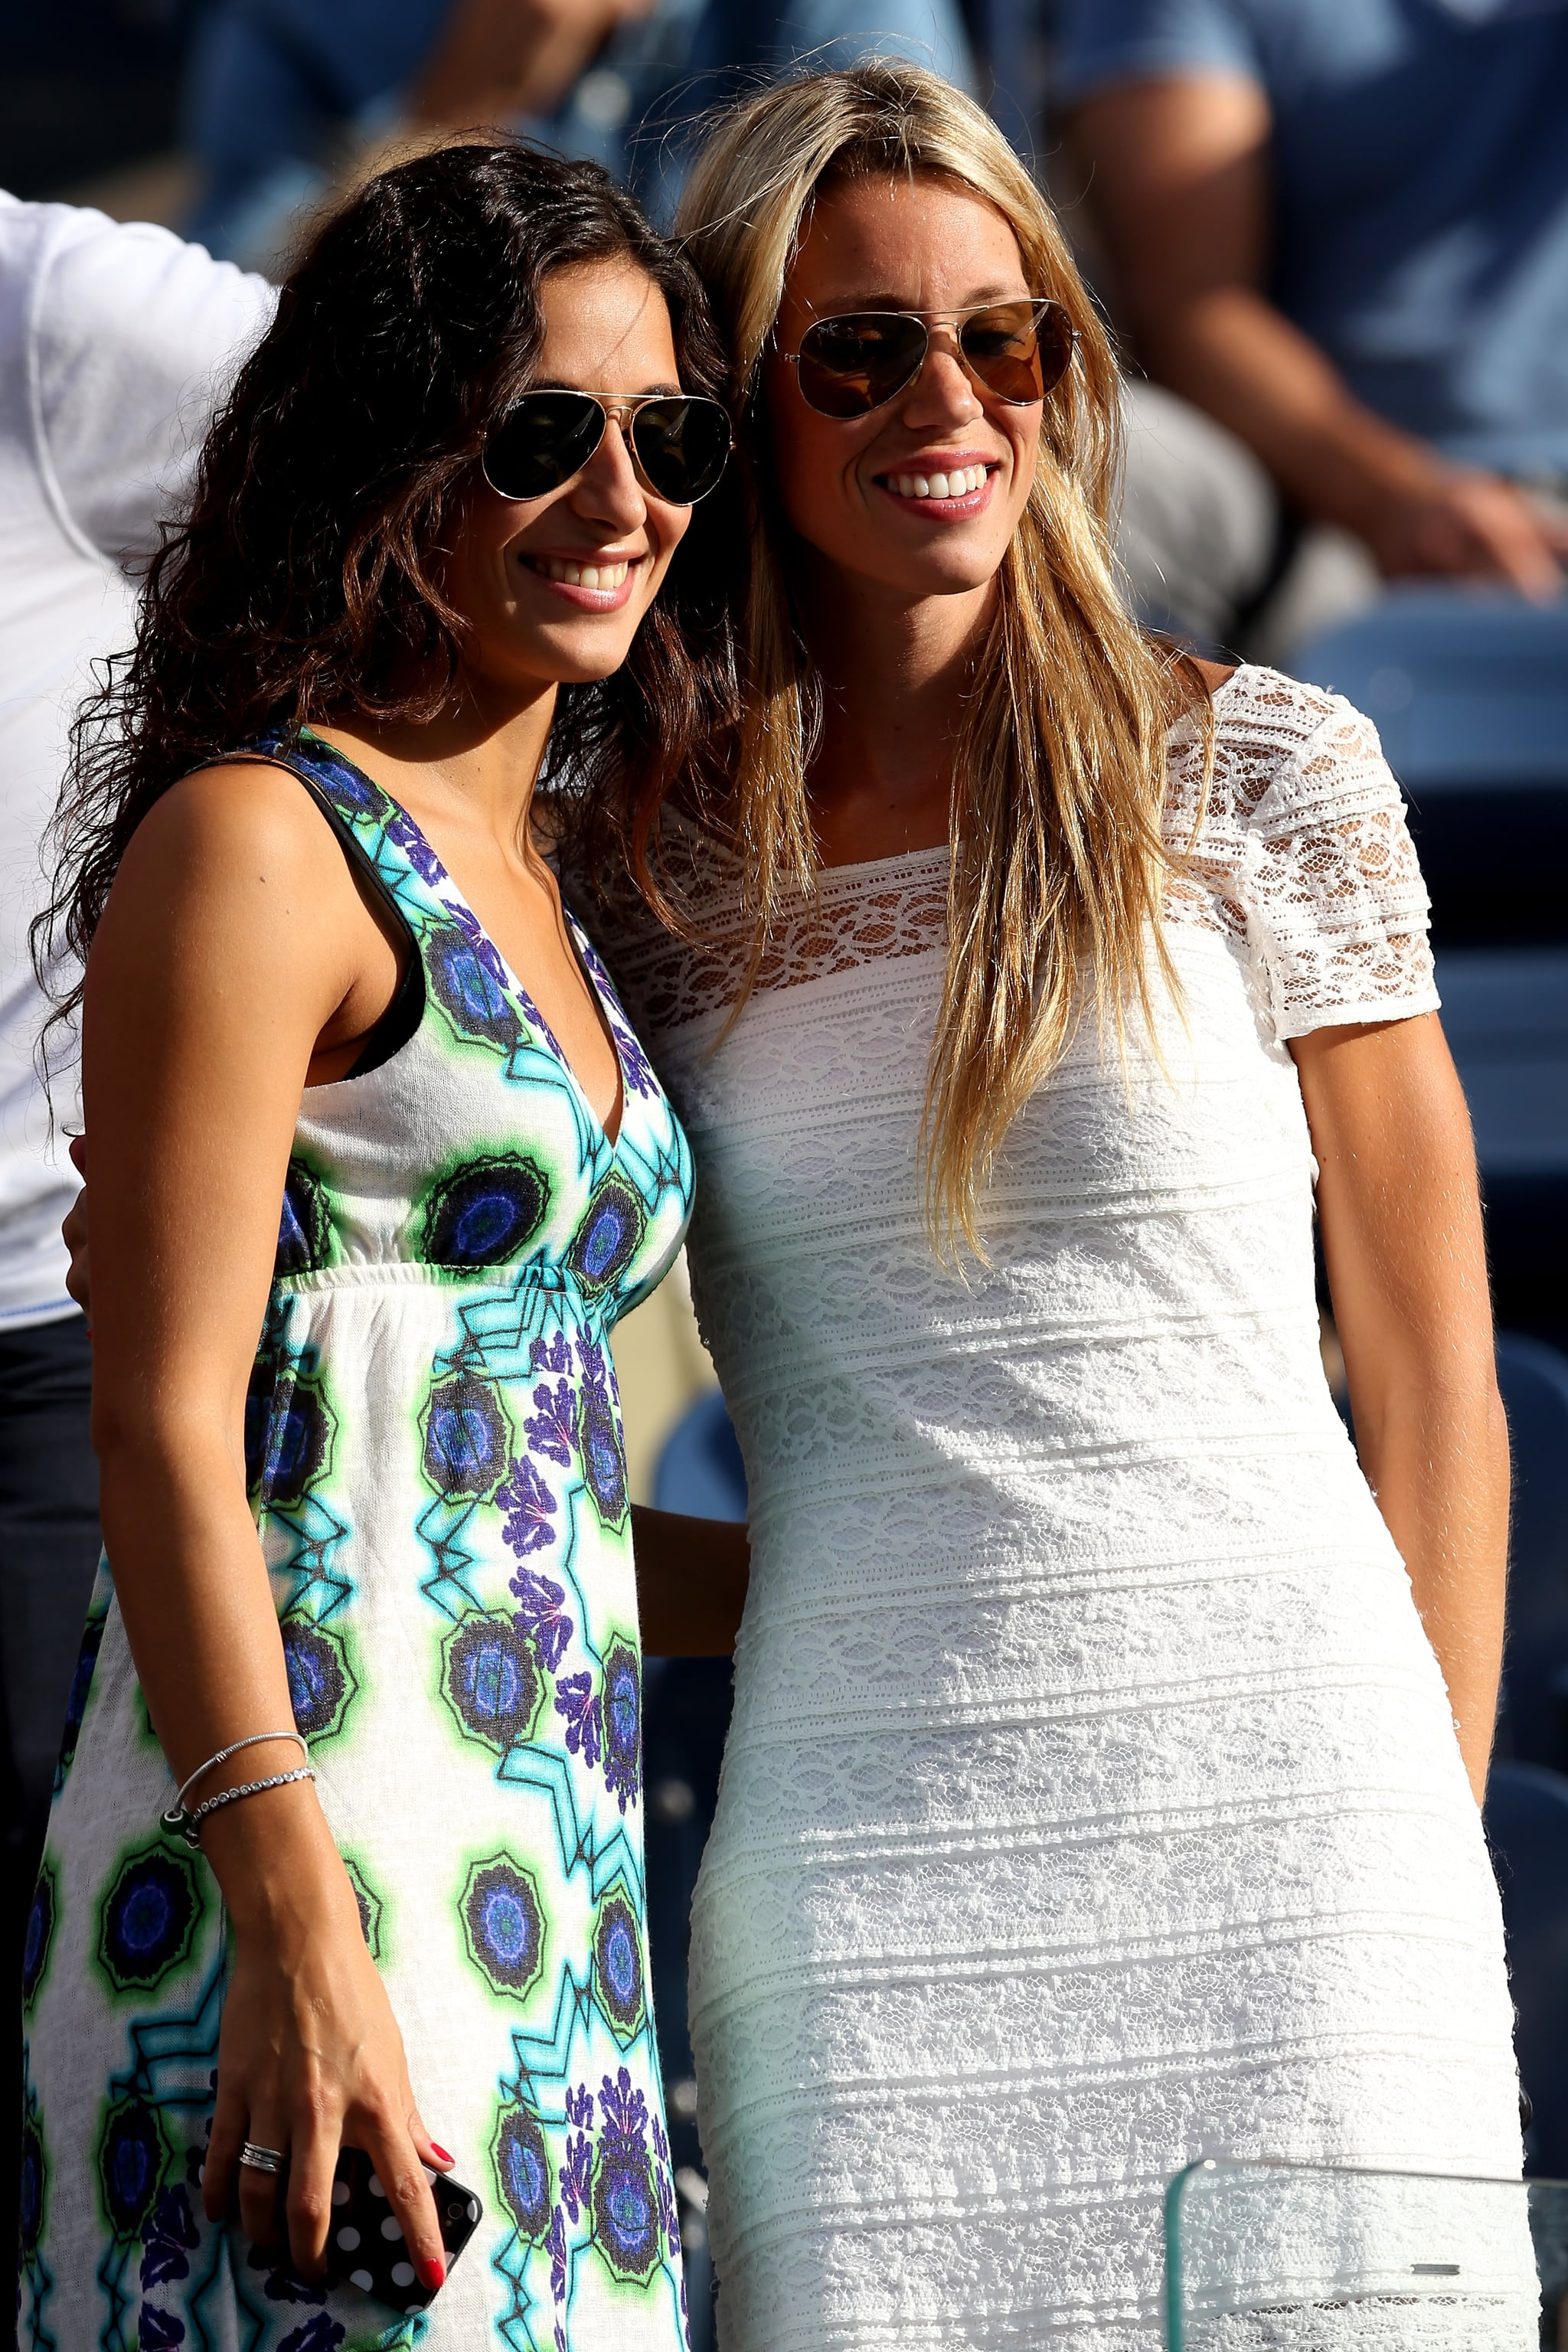 Rafael Nadal S Girlfriend Xisca Perello Posed For A Photo With His Celebrities At The 2013 Us Open Popsugar Celebrity Australia Photo 4